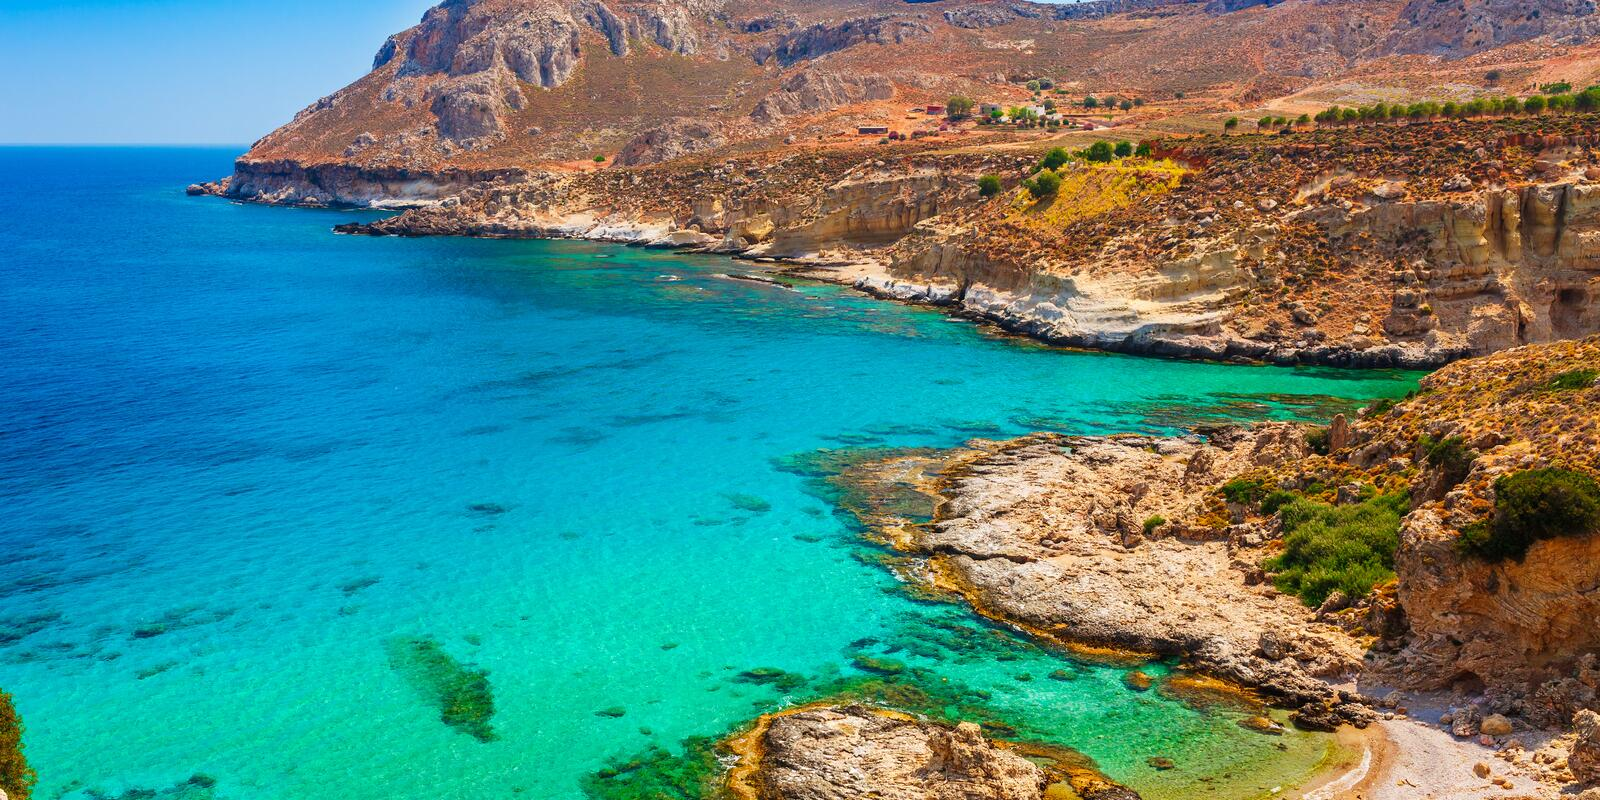 From the Cyclades to the Dodecanese